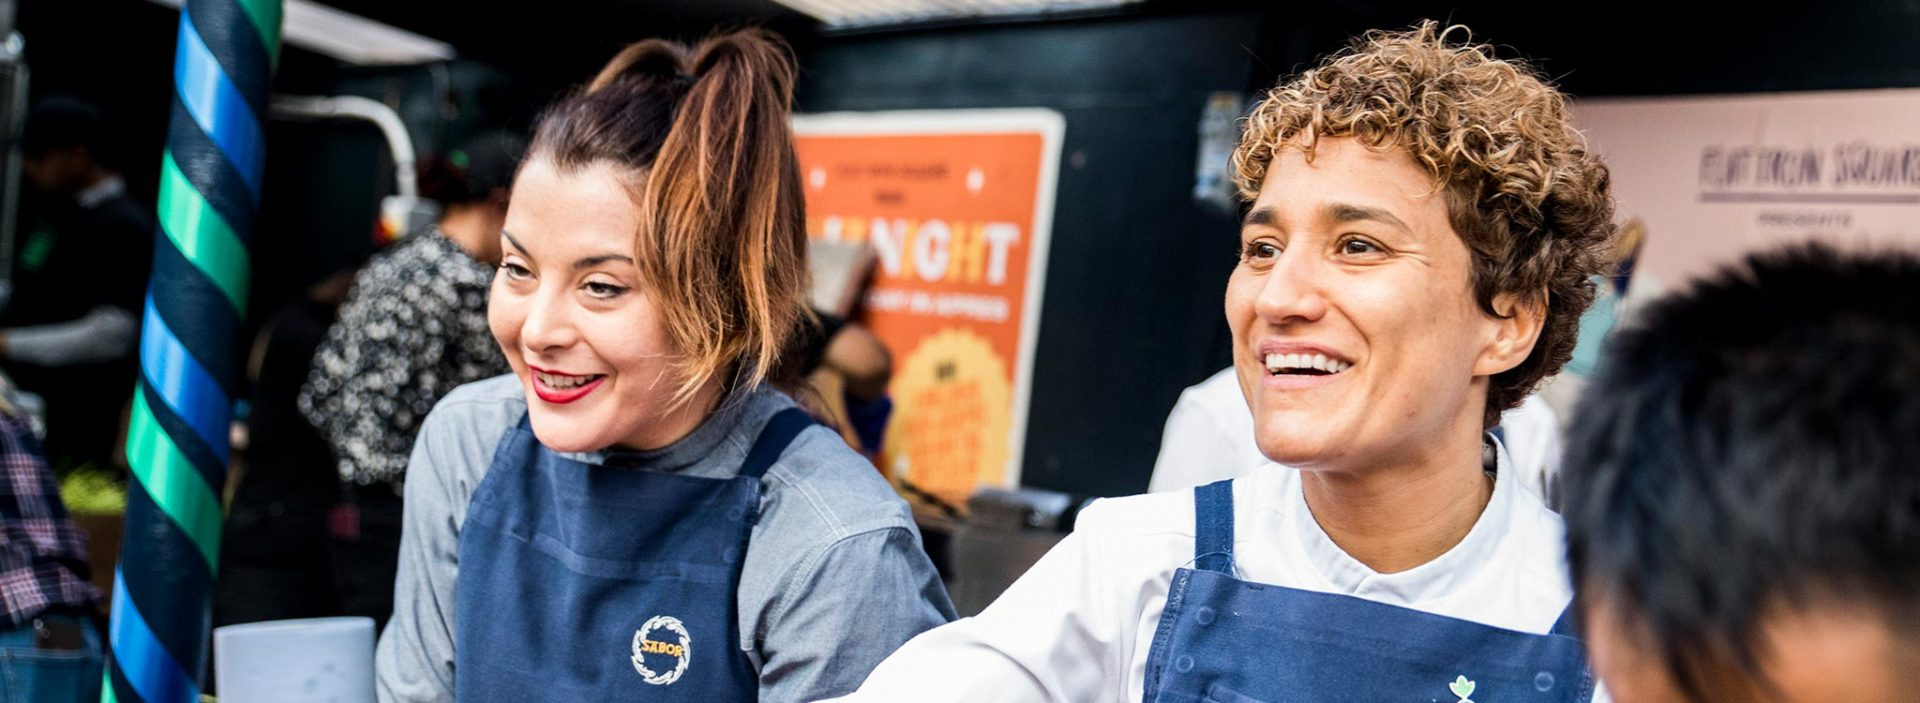 Nieves Barragan, Michelin-starred chef at Sabour Restaurant, at an Action Against Hunger event.